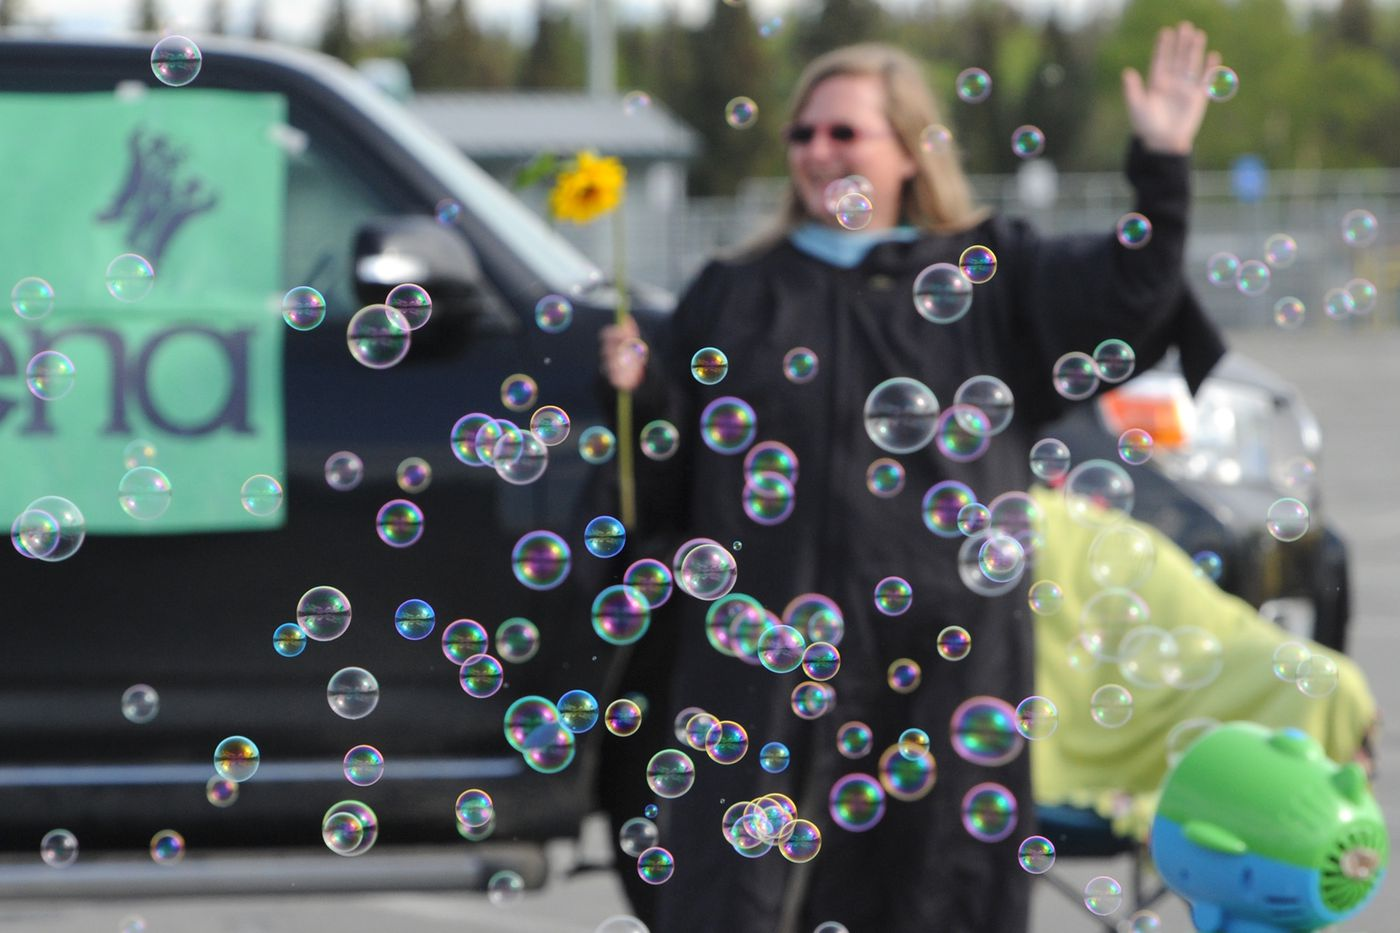 German Immersion teacher Evelyn Newhouse waved and shouted 'Congratulations ' as Service High School graduating seniors passed through the parking lot on Tuesday, May 19, 2020. (Bill Roth / ADN)